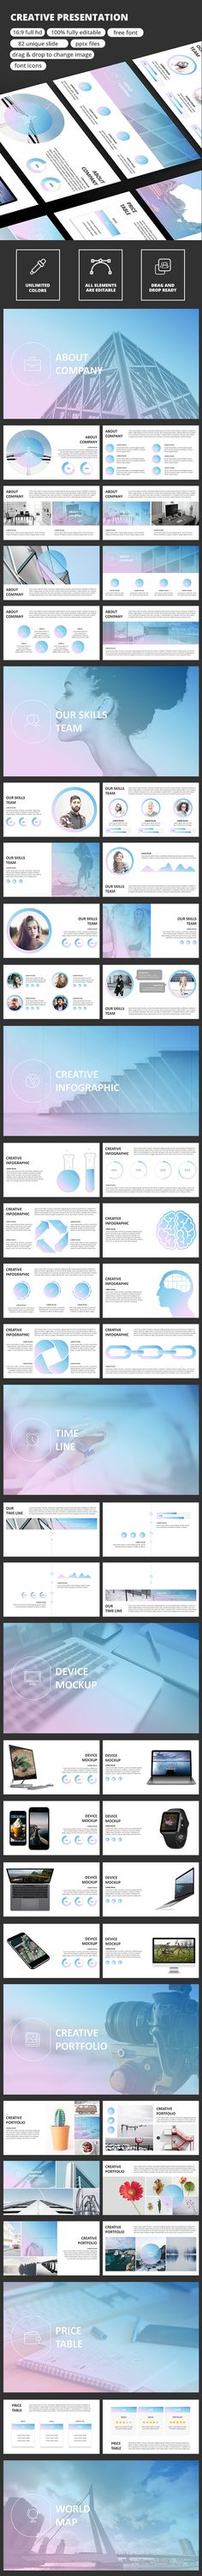 Material Keynote Presentation Template Presentation templates - Sales Presentation Template